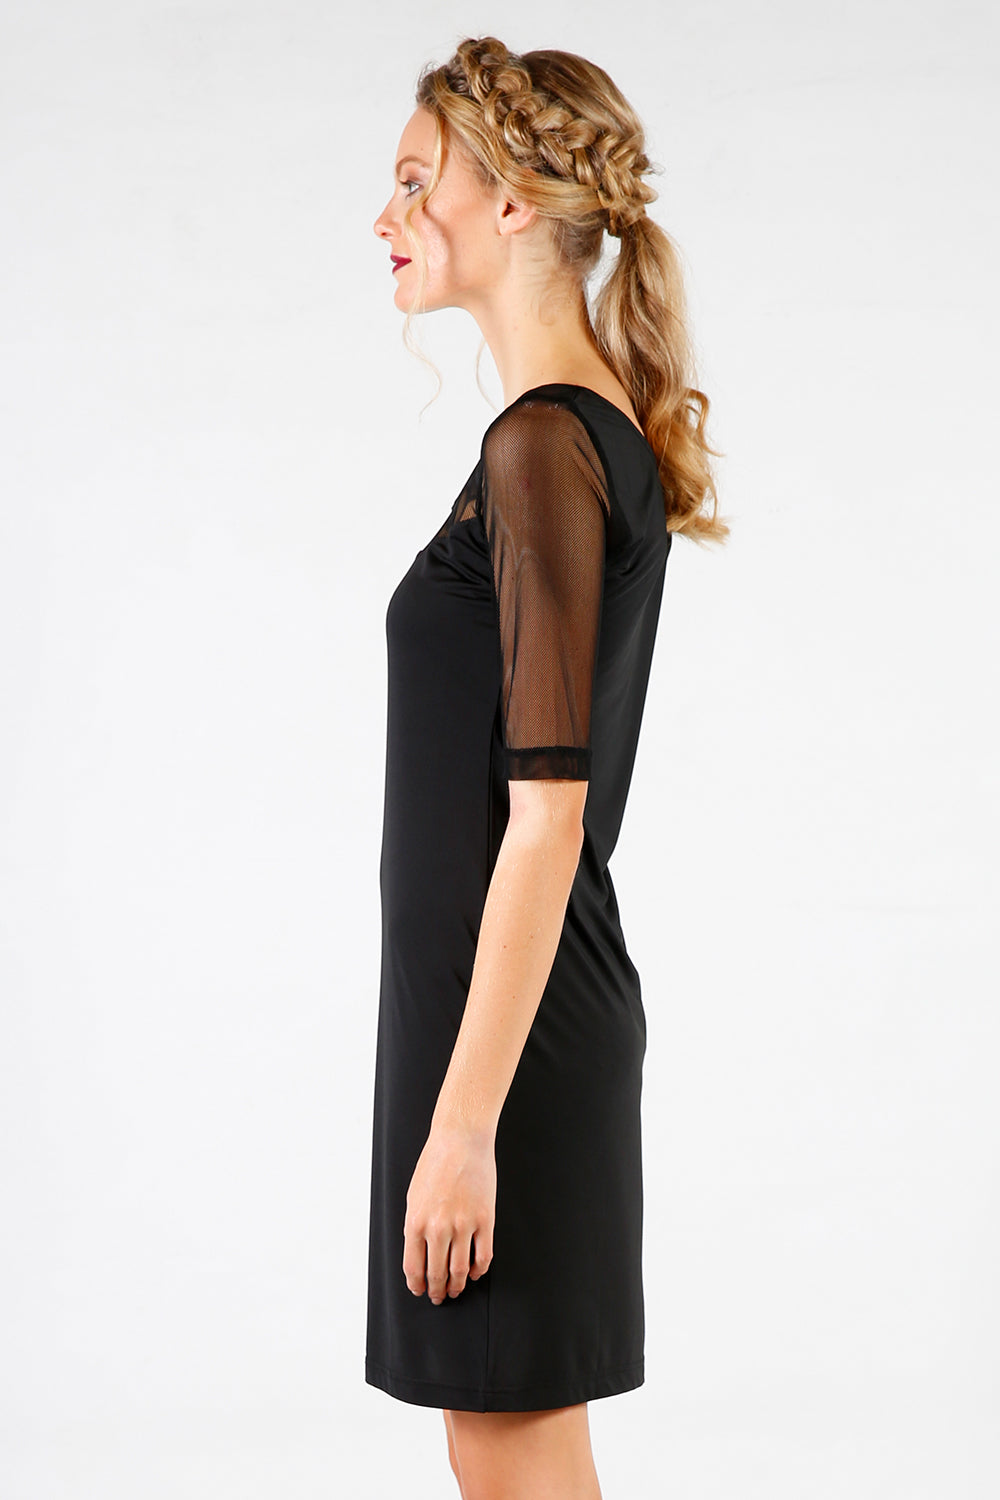 Fix Bit Slip | Undergarments | 3/4 sleeve | Black Slip | New Zealand Fashion | Annah Stretton